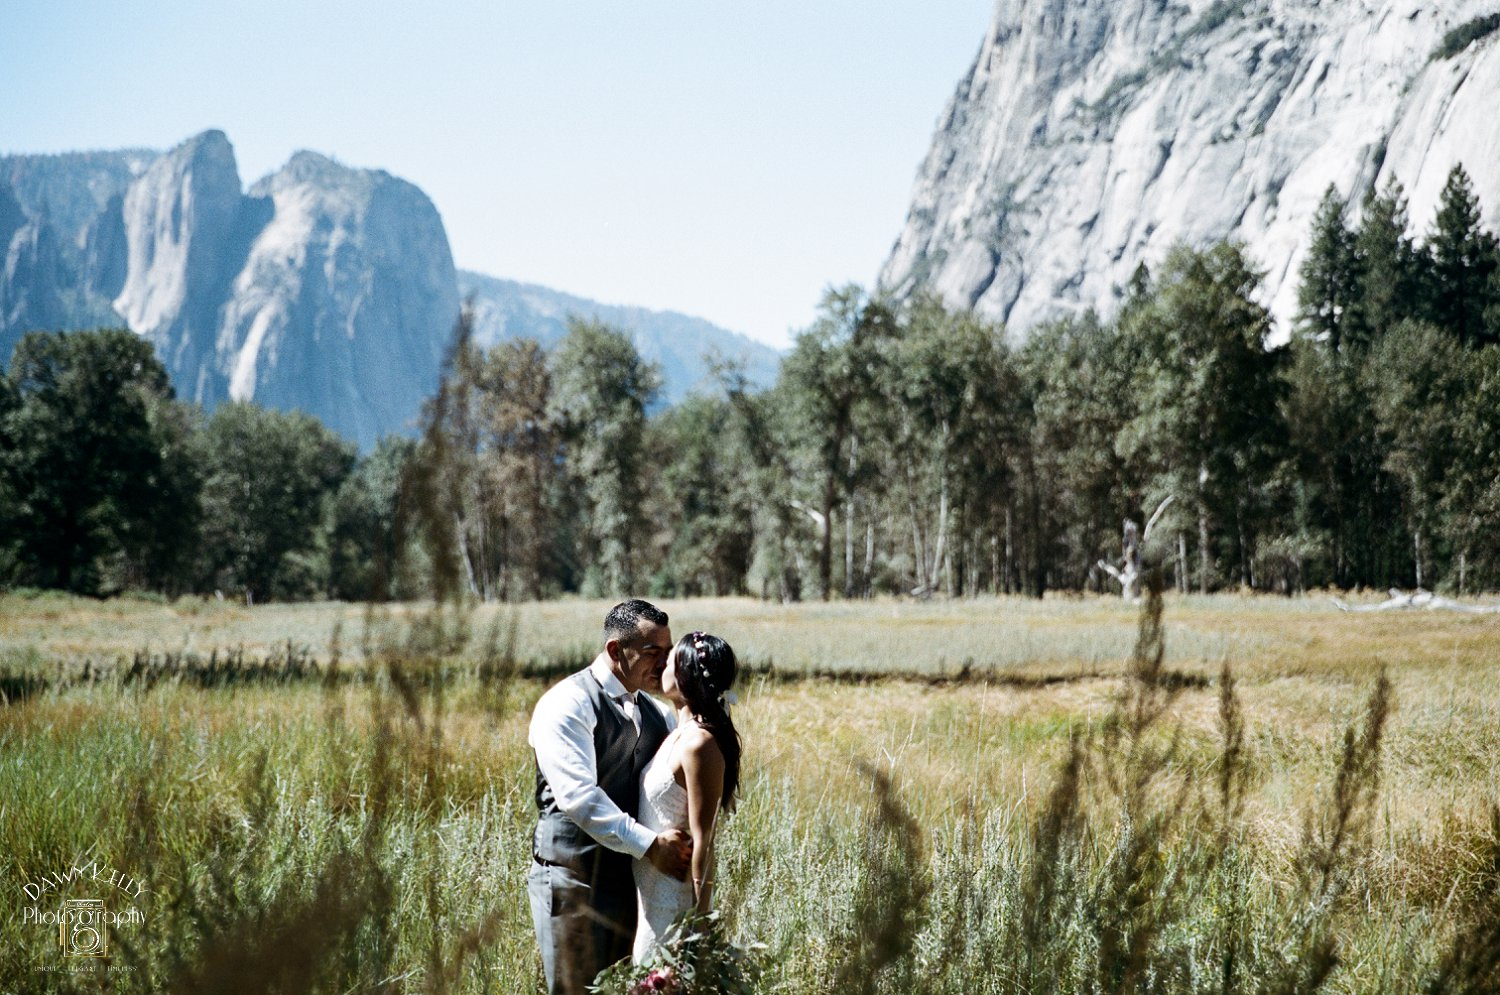 There are unlimited gorgeous views for wedding photos in Yosemite. Everywhere you look, it's majestic.